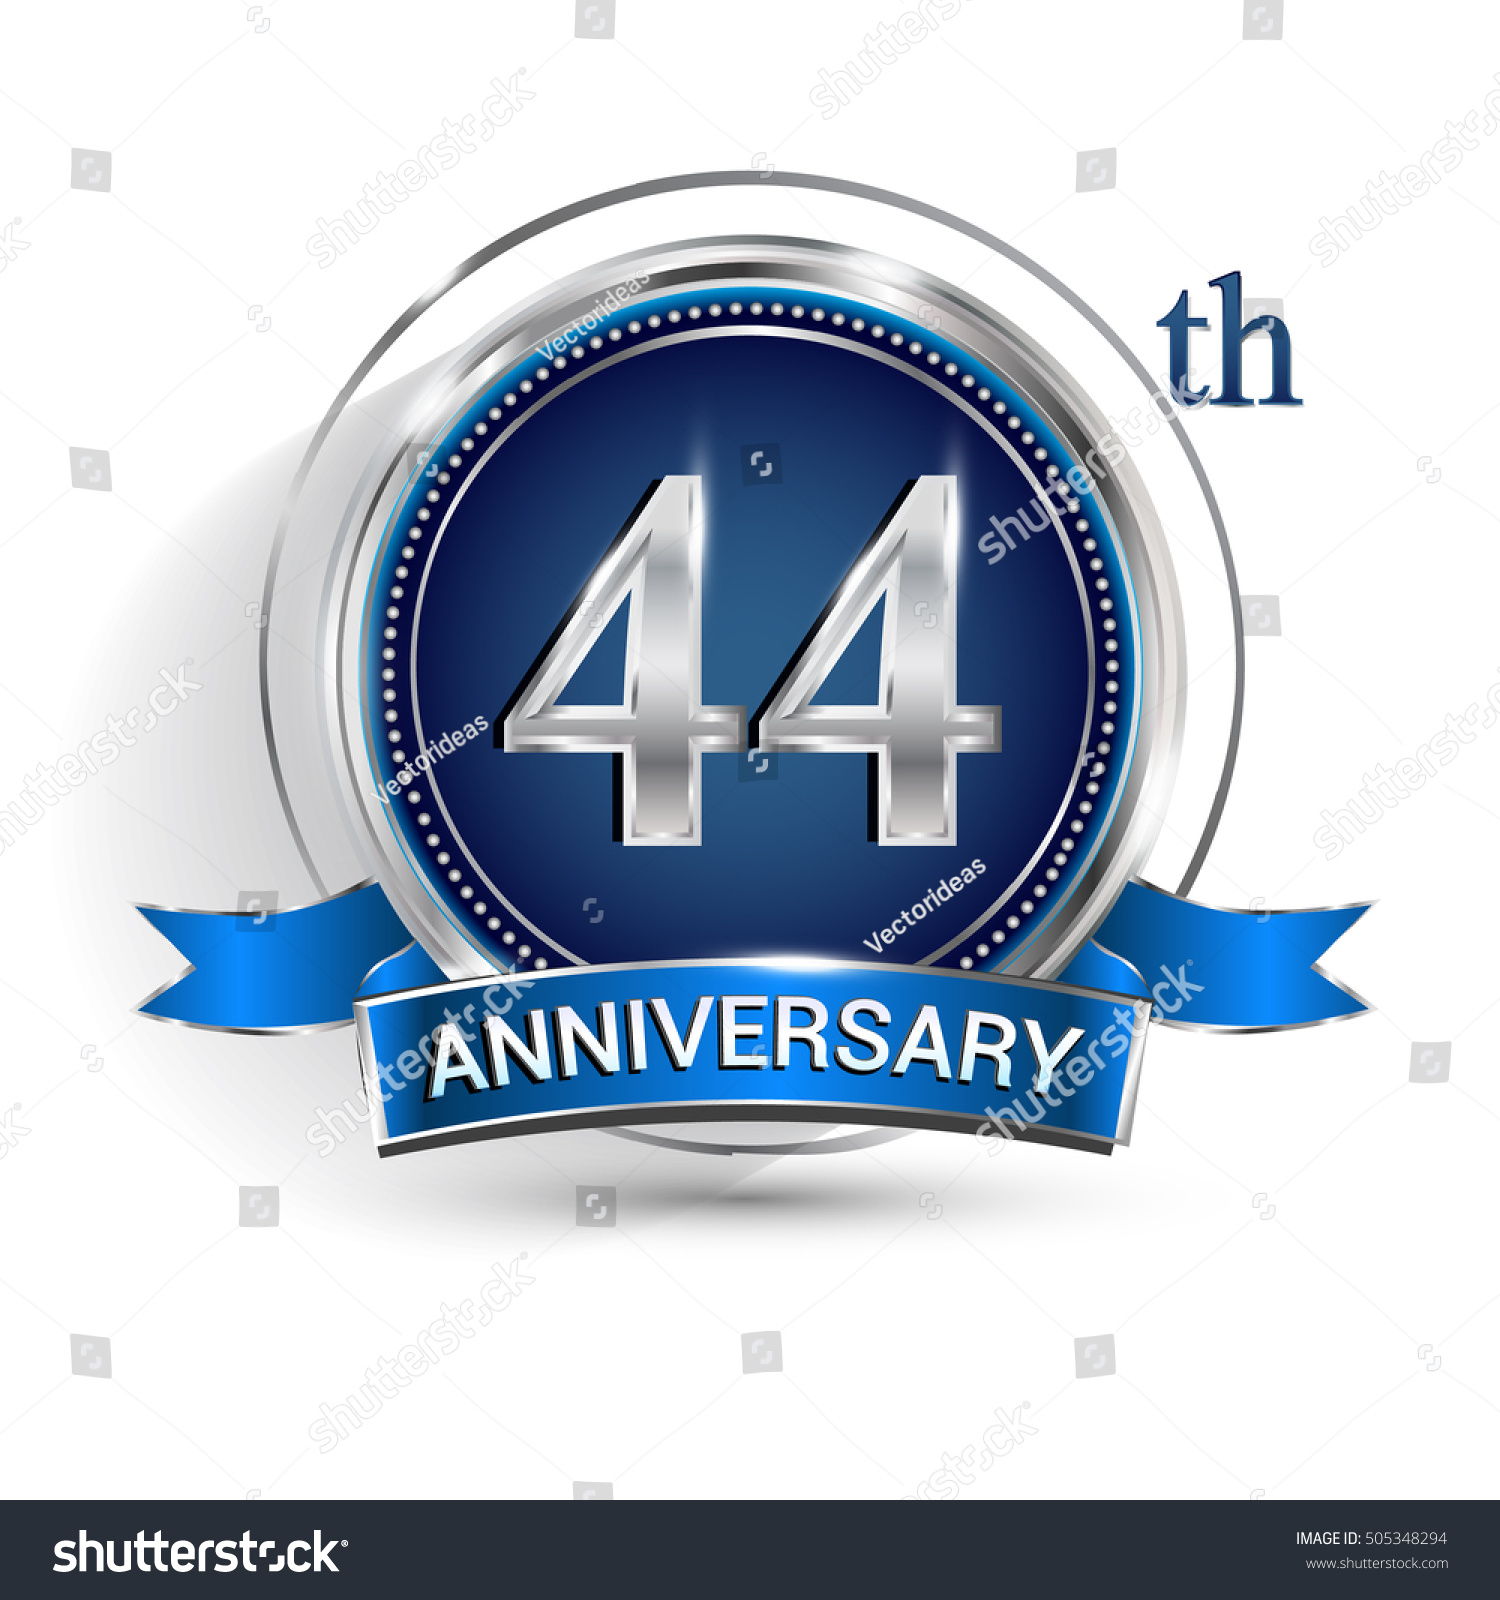 Celebrating 44th anniversary logo silver ring stock vector celebrating 44th anniversary logo with silver ring and blue ribbon isolated on white background biocorpaavc Gallery